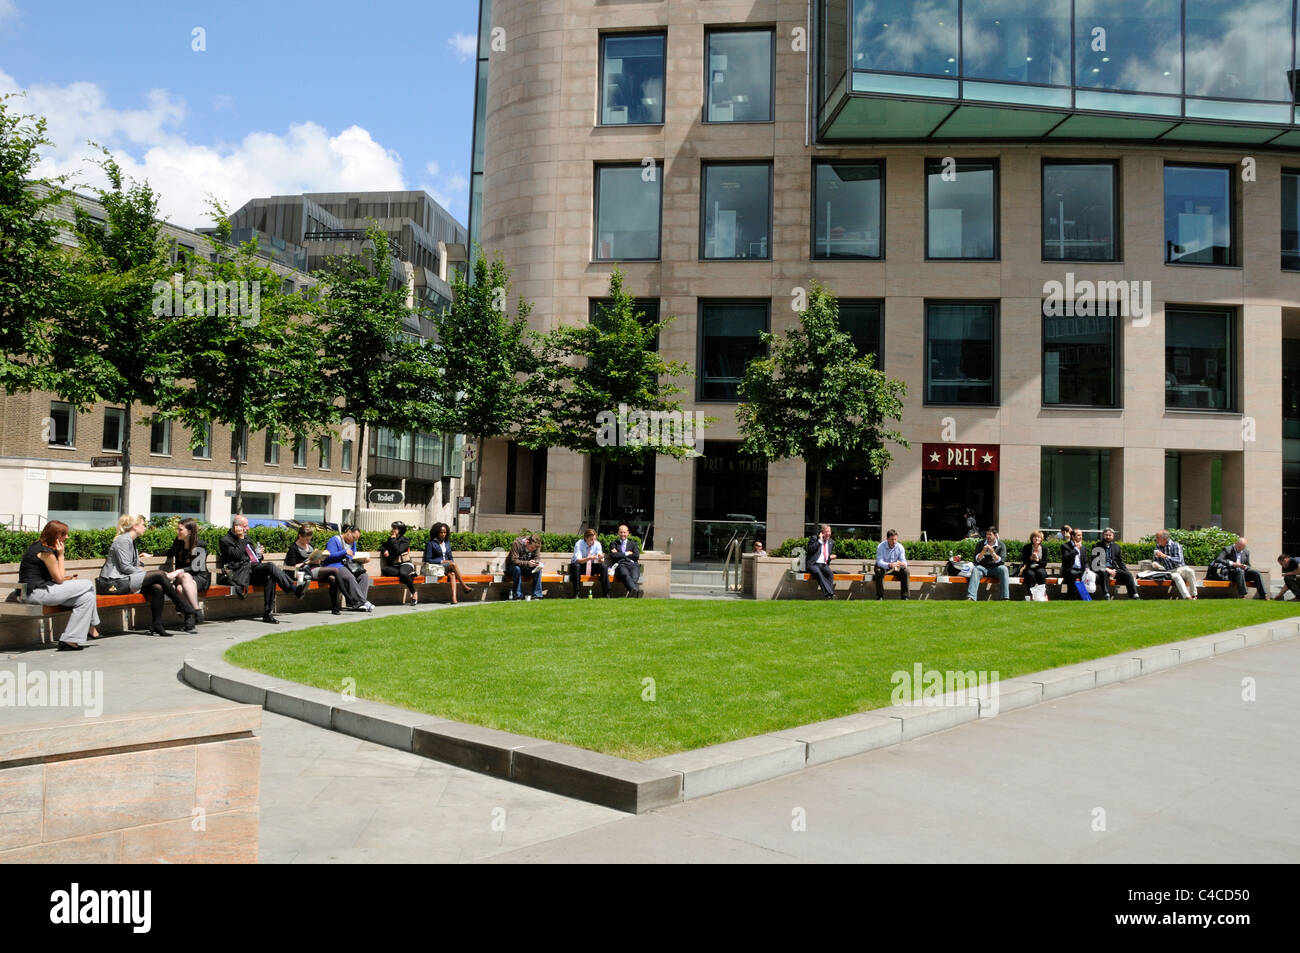 People enjoying the sunshine in a new modern triangle shaped public seating area or open space, Holborn Circus Viaduct - Stock Image